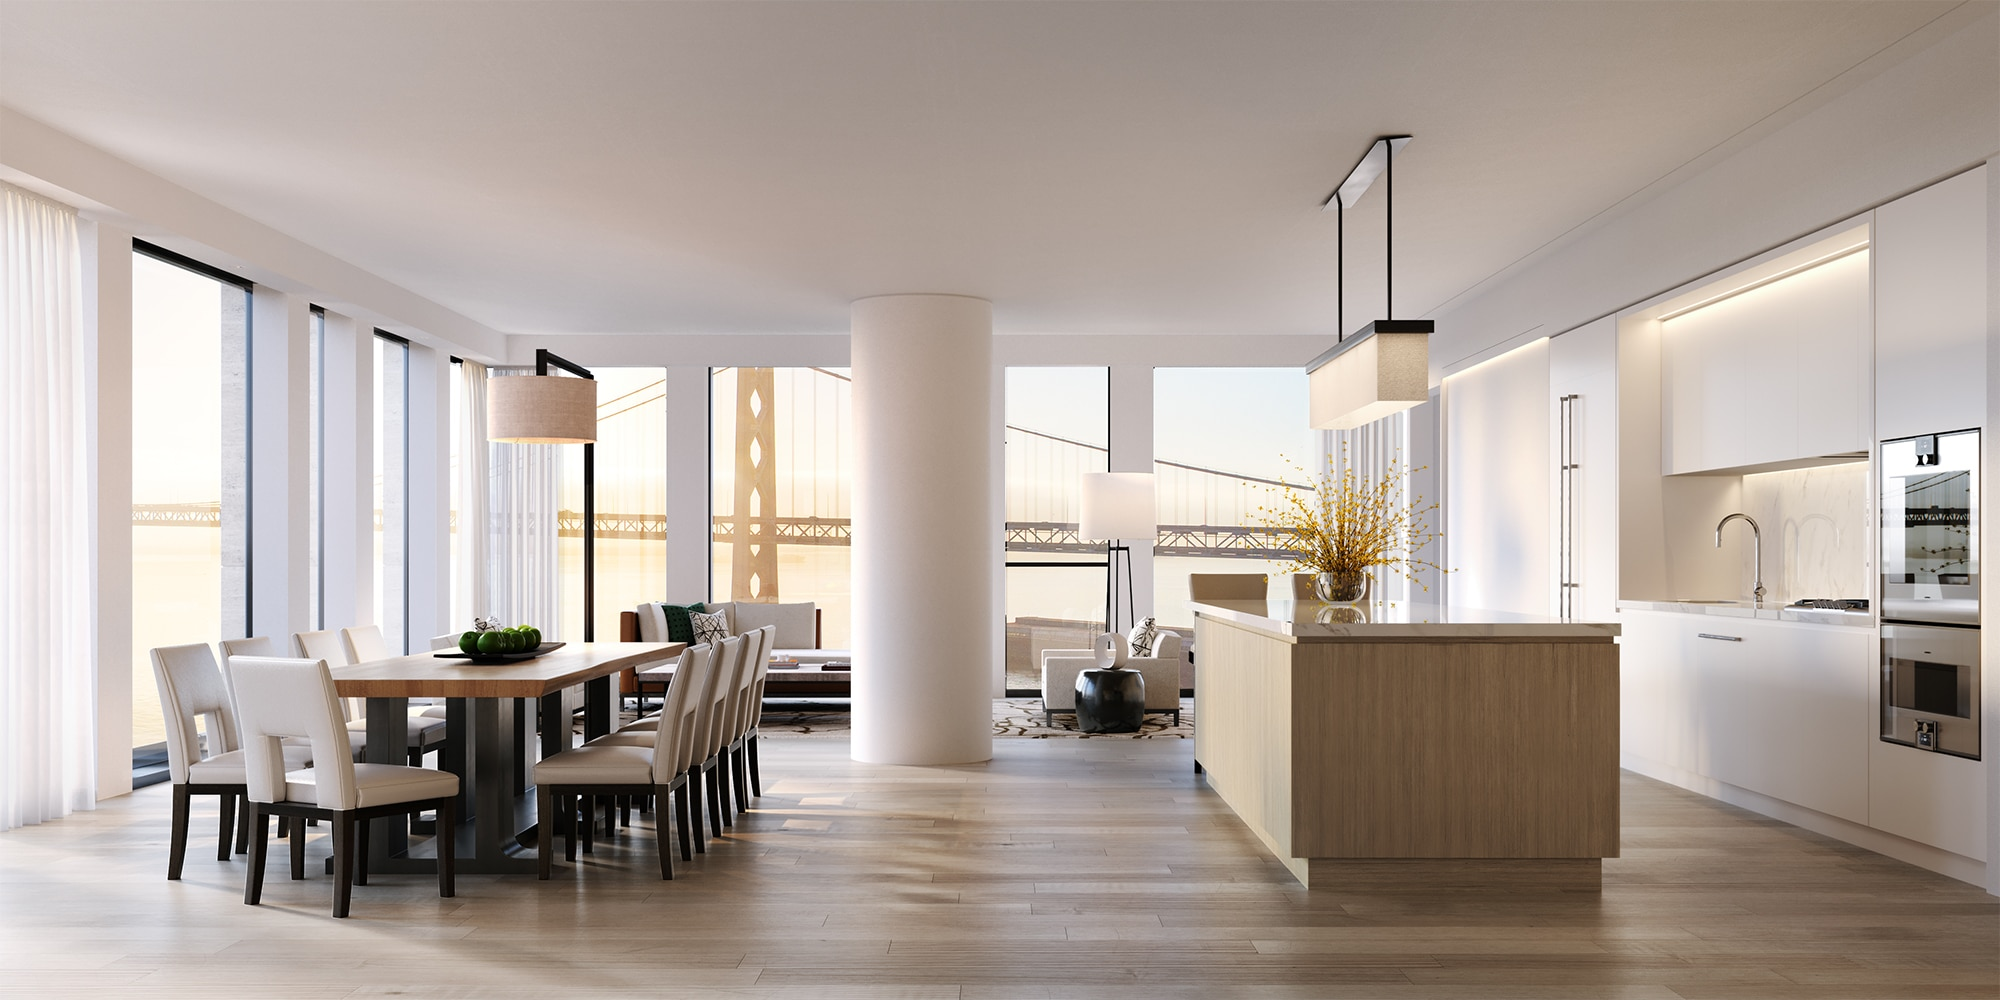 Condo interior at One Steuart Lane in San Francisco. Open layout with kitchen island, dining table and furnished living room.